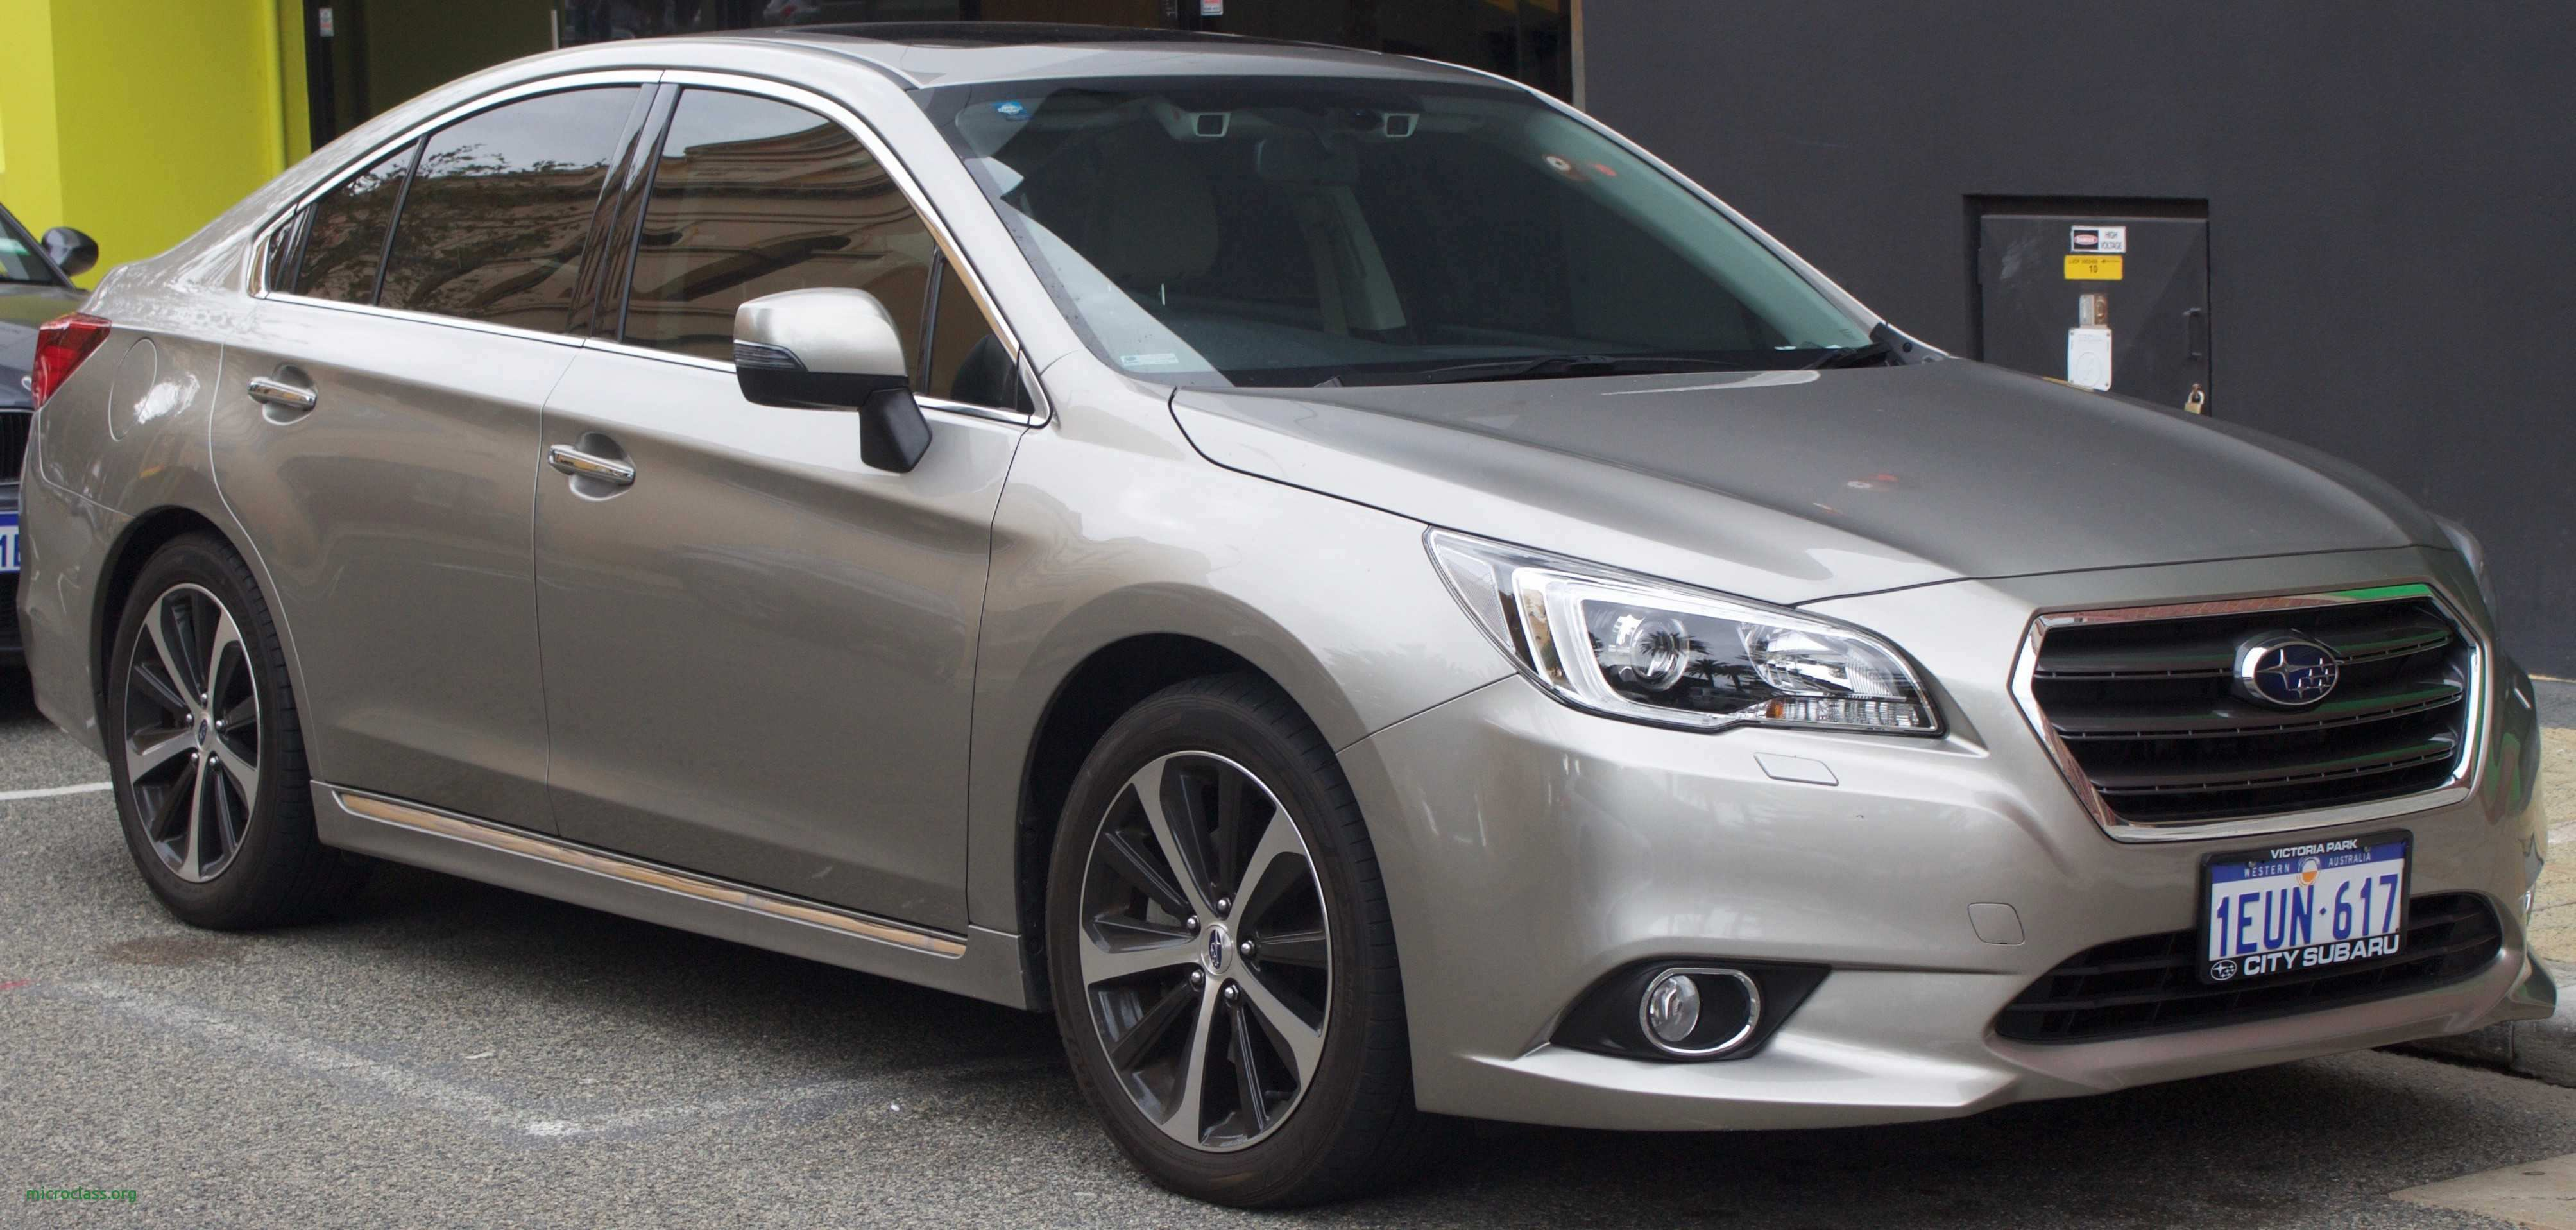 43 The Best 2020 Subaru Legacy Turbo Gt New Model And Performance